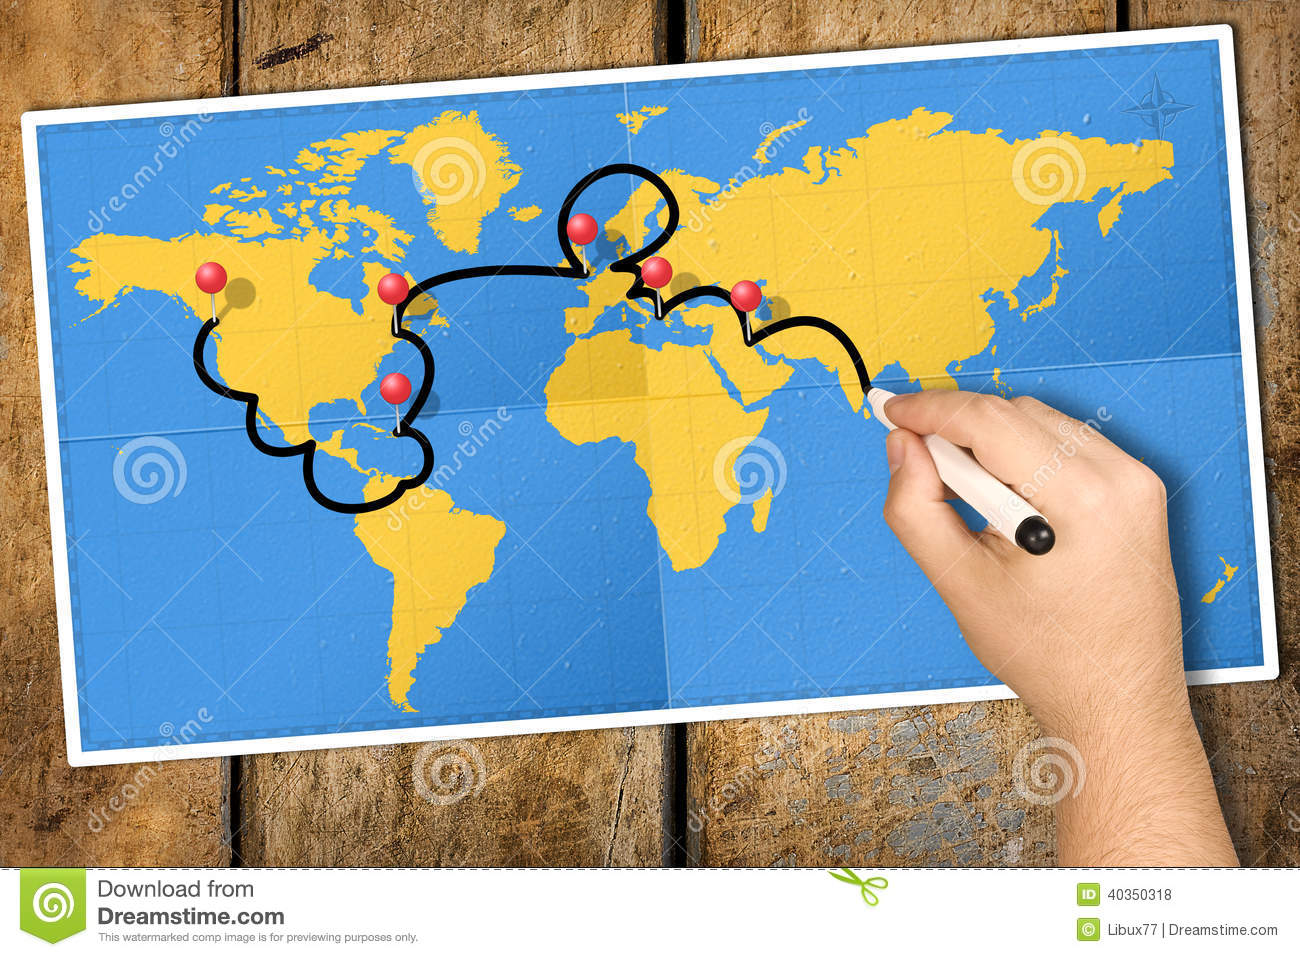 Itinerary World Map Travel Hand Marker PushPin Photo – World Map Travel Pins